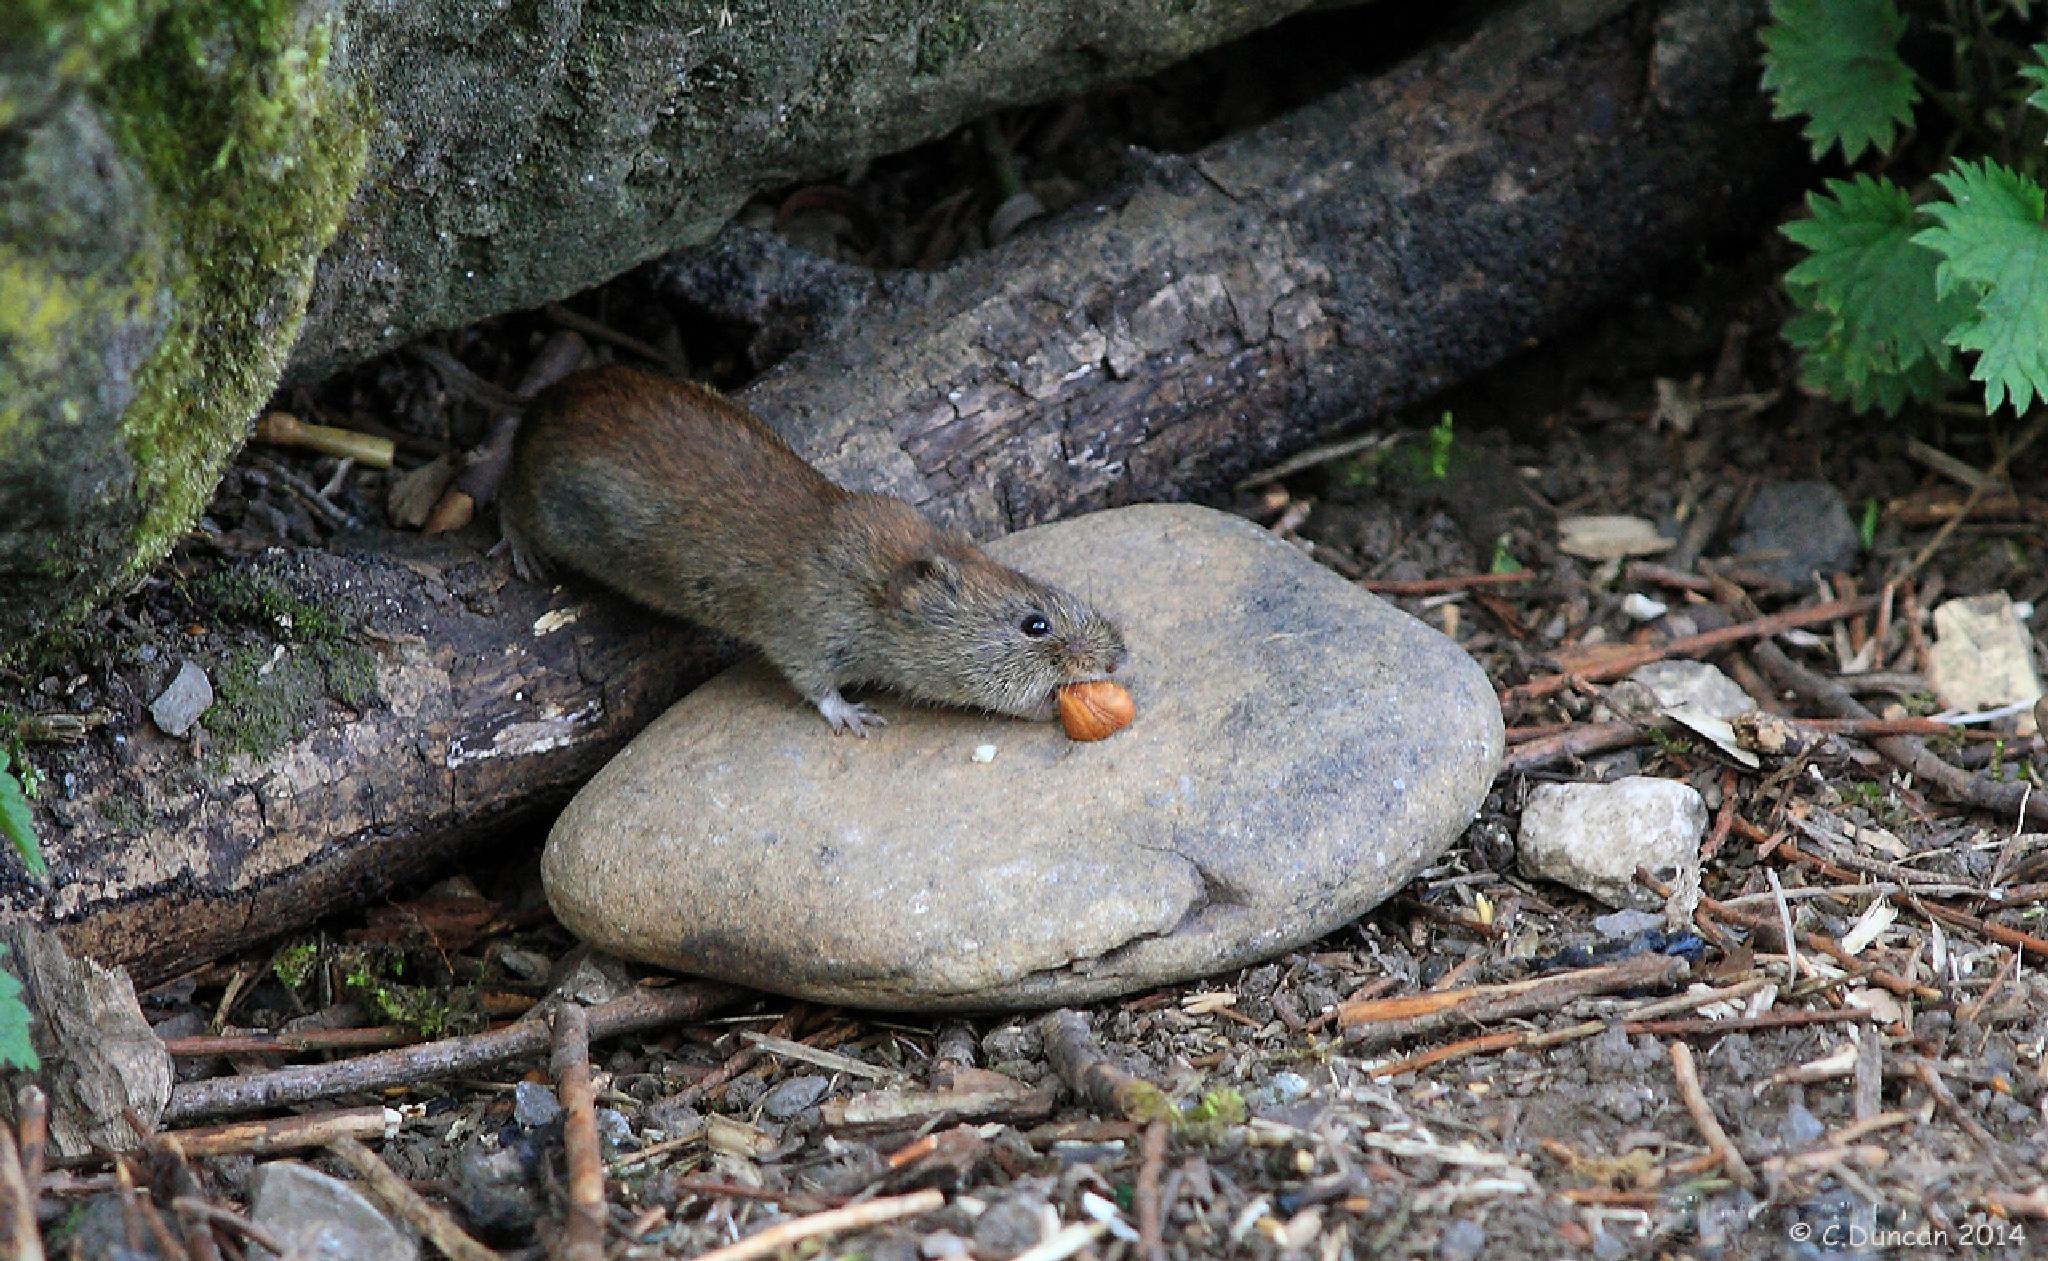 Submission (Bank Vole) by geordiepix